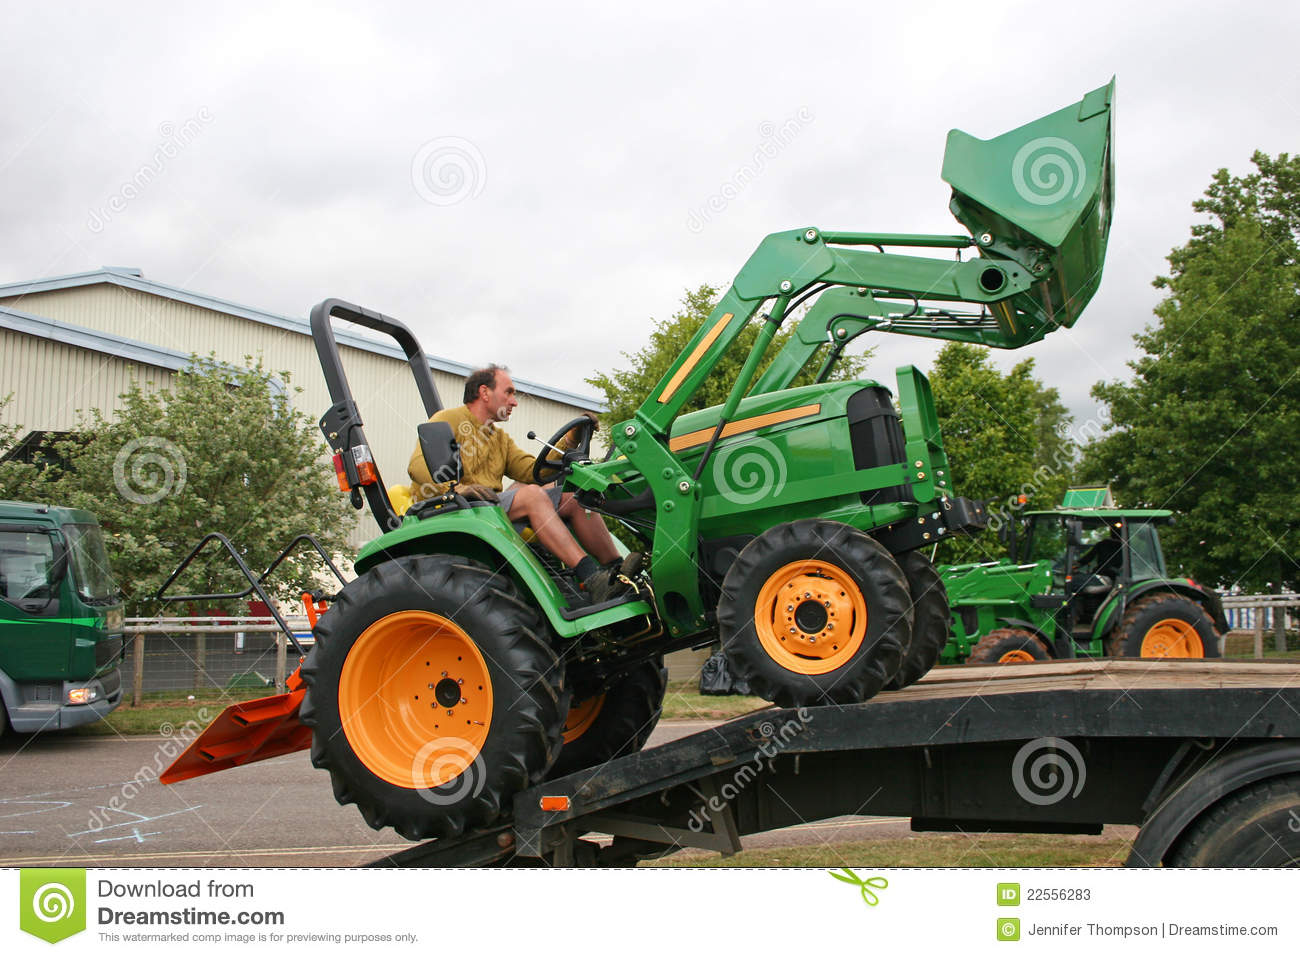 Guy On Tractor : Man driving tractor stock image of work machines